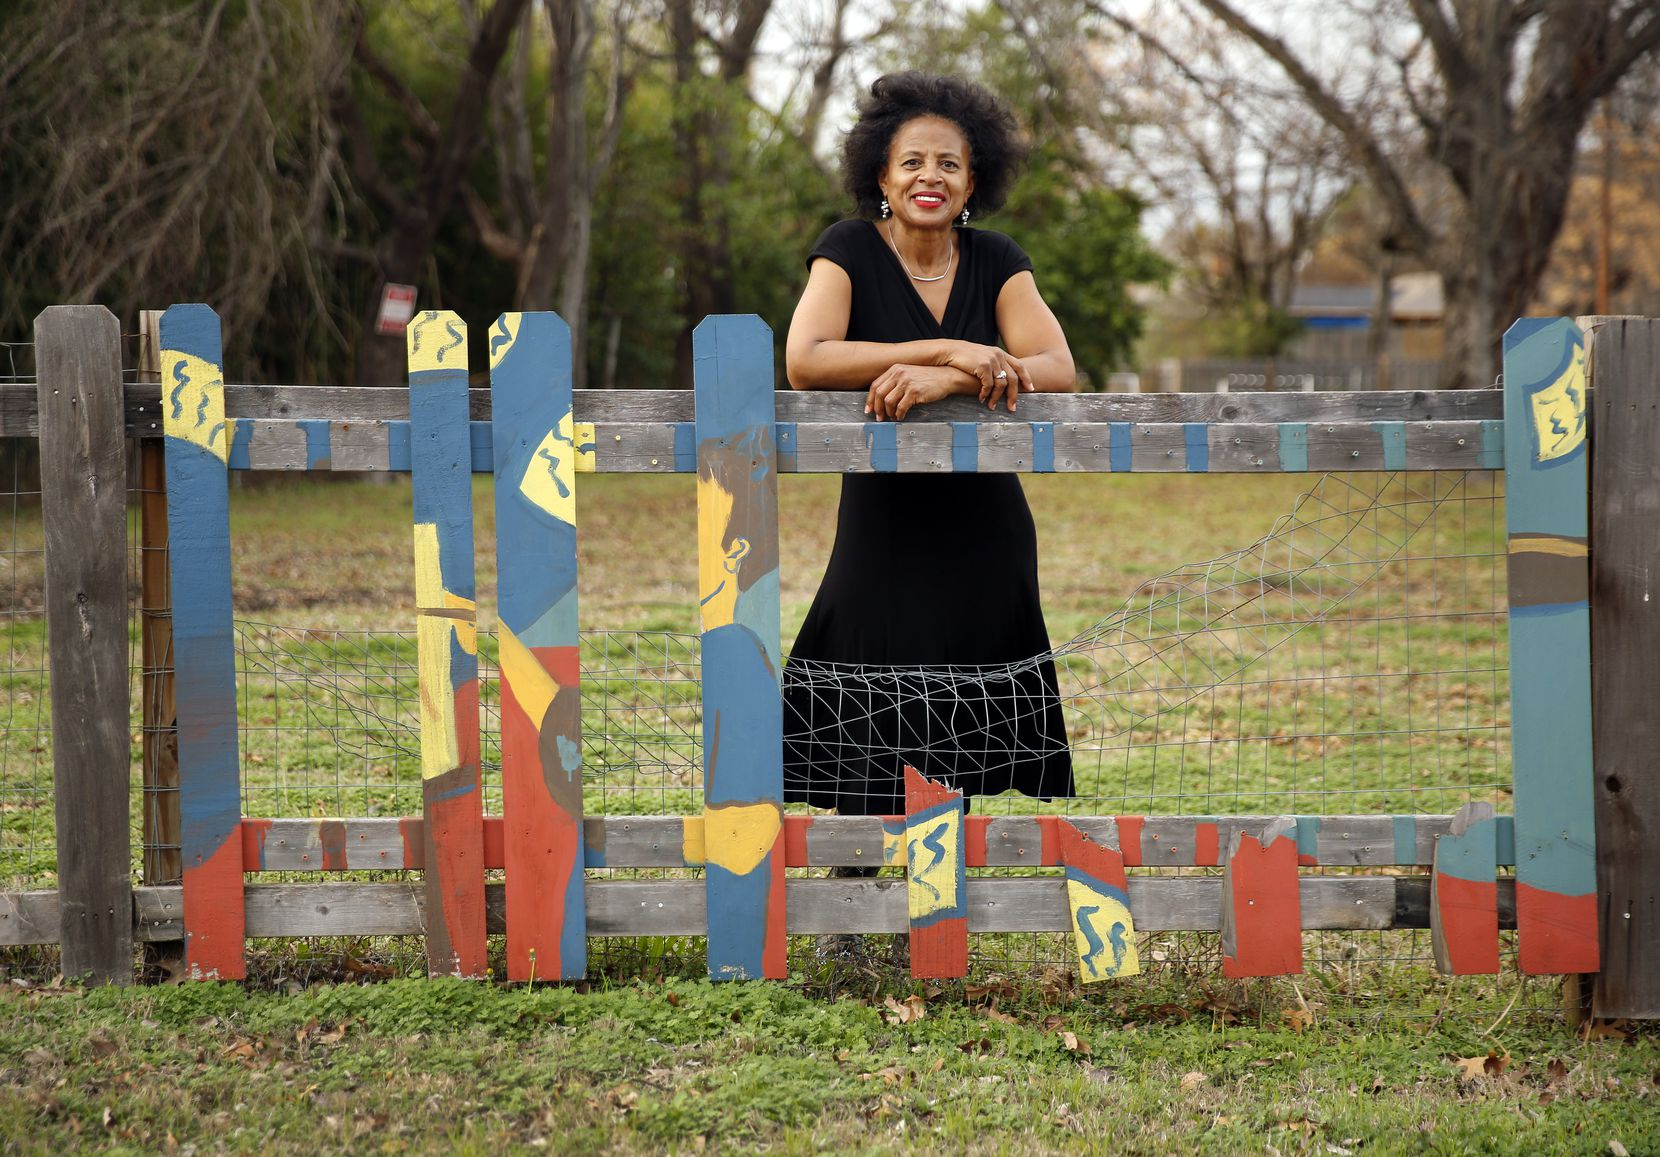 Alendra Lyons is shown at the intersection of Collins Avenue and Clarkson Street in the Mill City neighborhood of South Dallas. DISD students painted a fence around a property that has since fallen into disrepair.